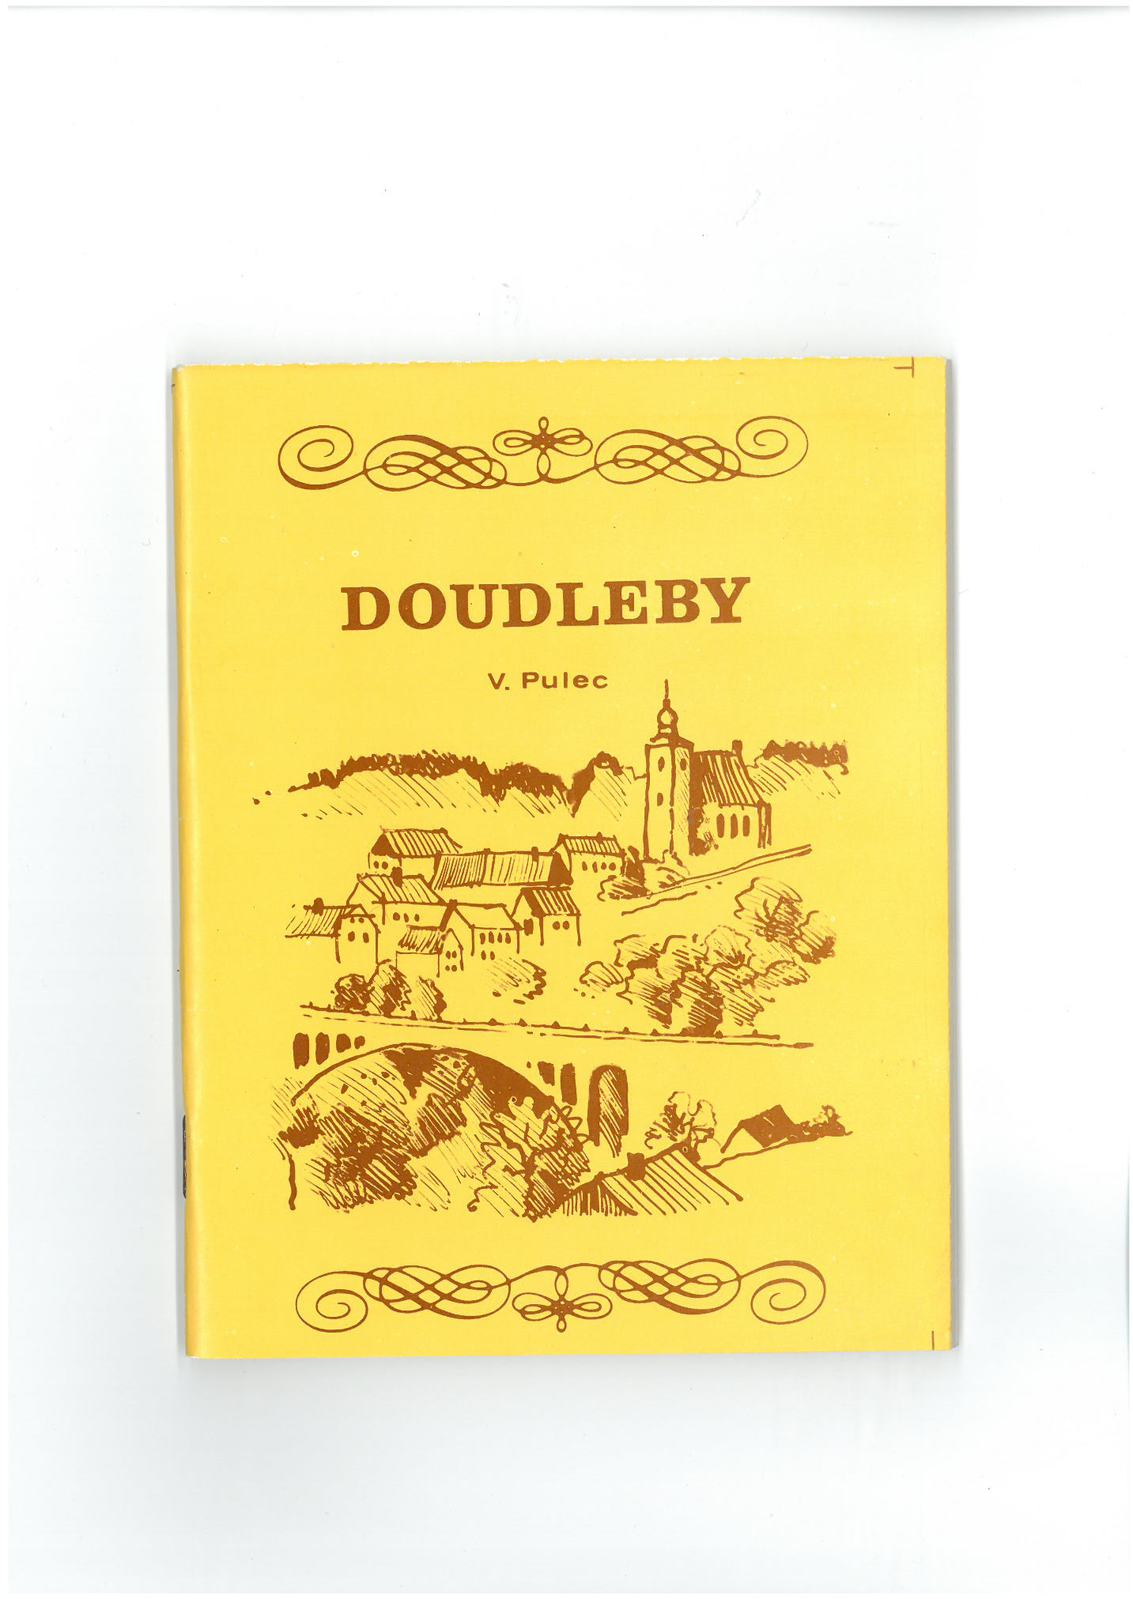 Doudleby